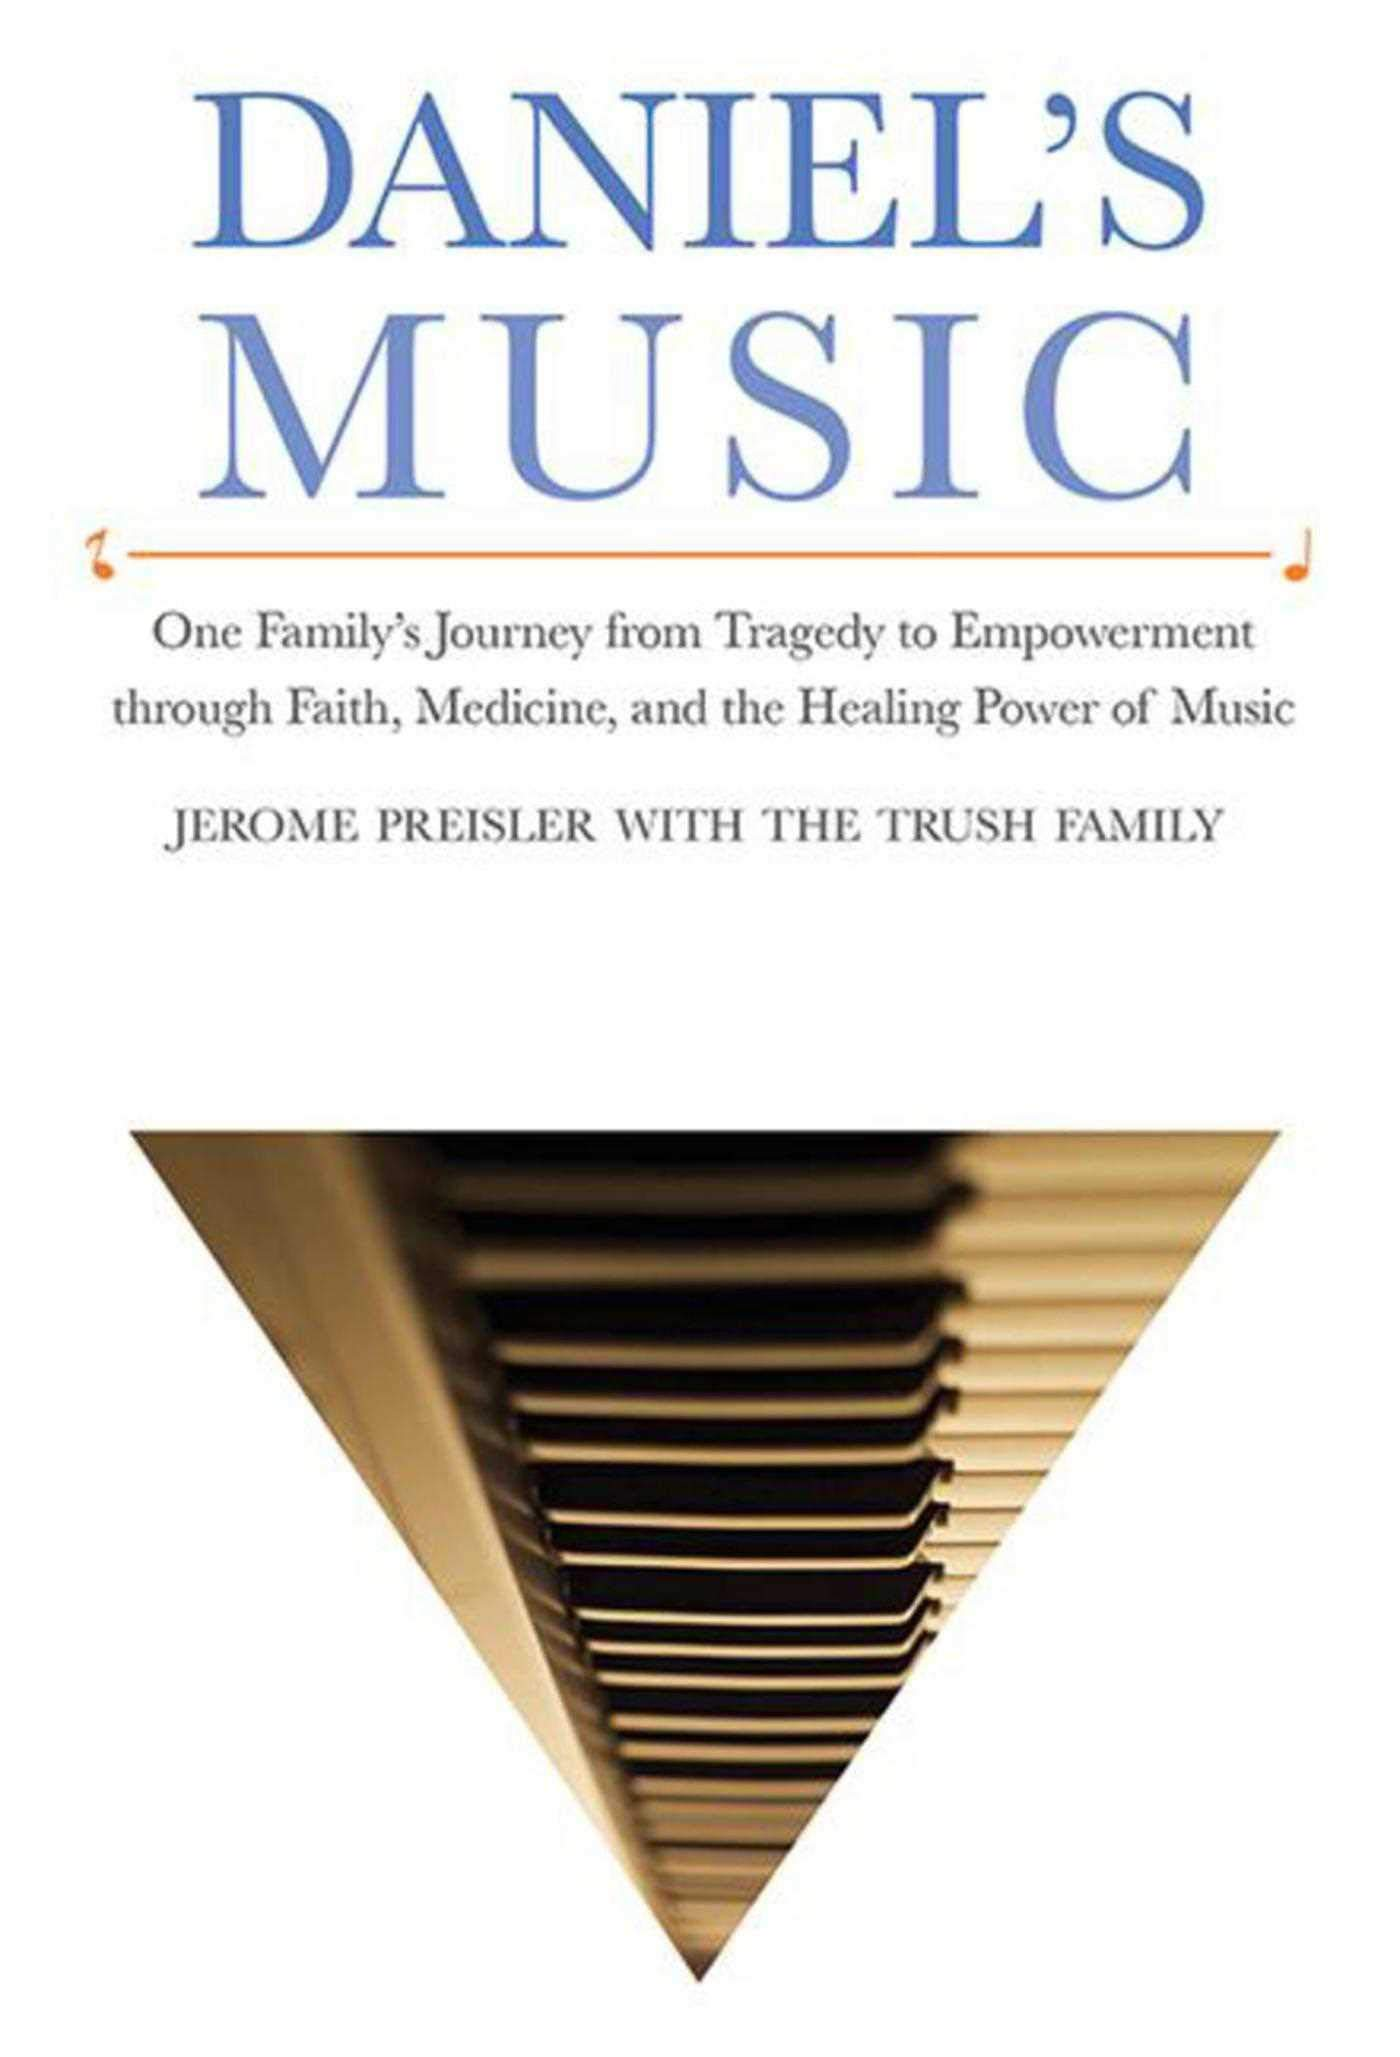 Image OfDaniel's Music: One Family's Journey From Tragedy To Empowerment Through Faith, Medicine, And The Healing Power Of Music